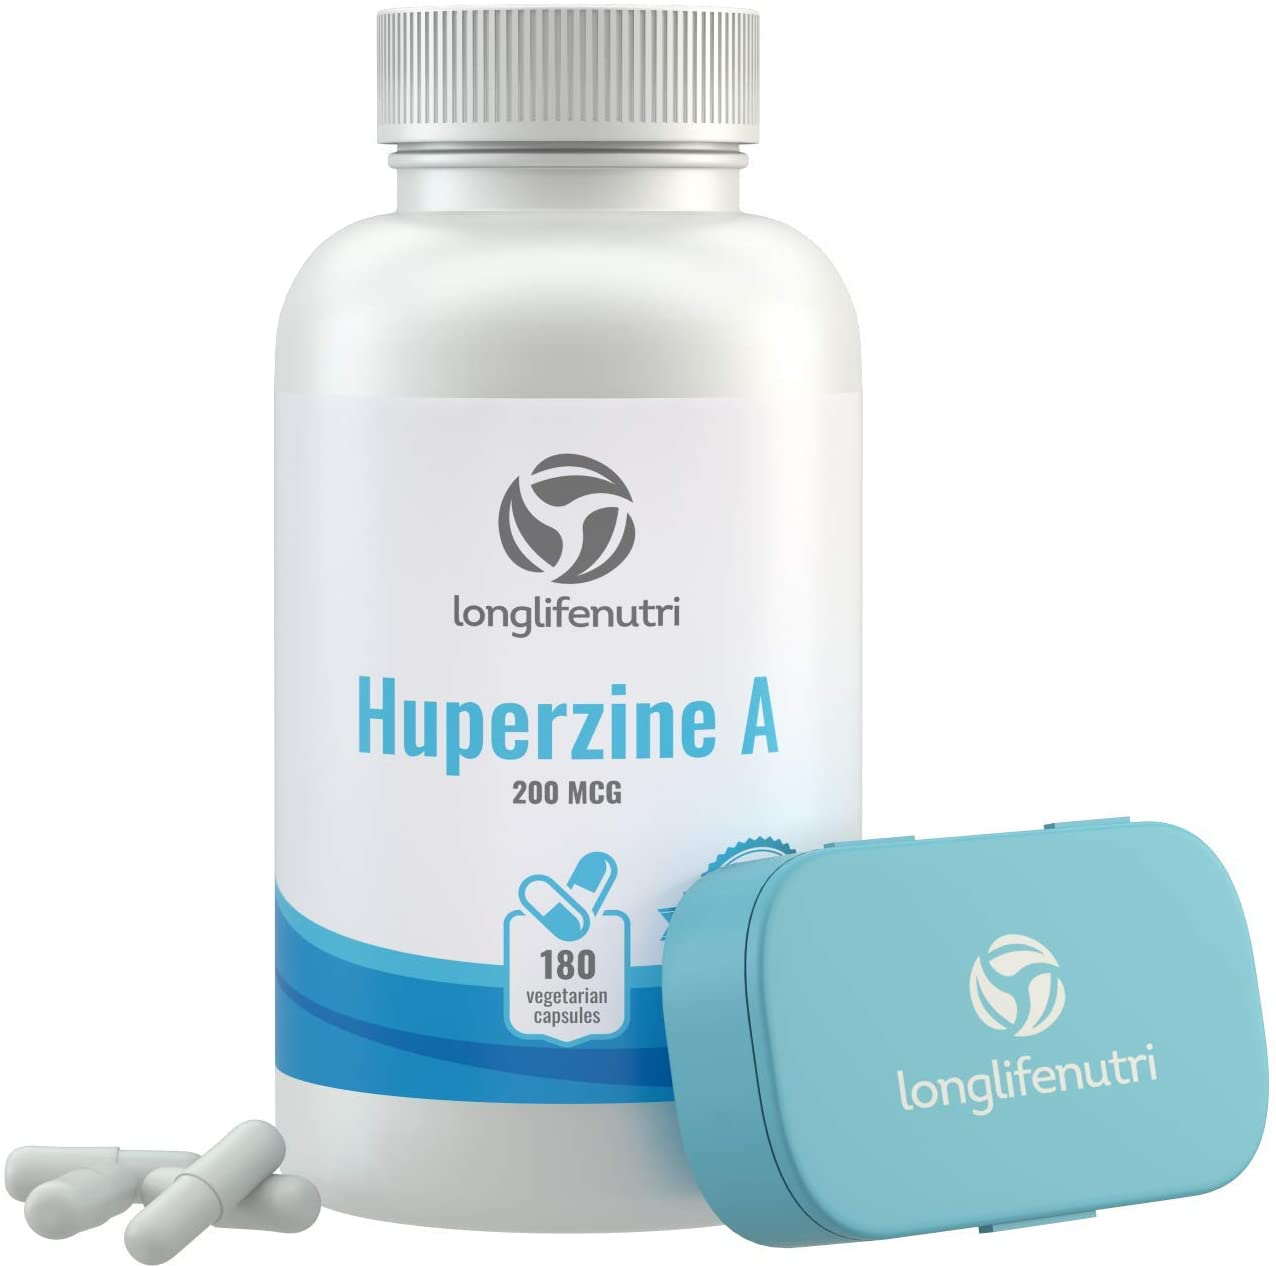 Huperzine A 200 Mcg 180 Vegetarian Capsules | Made in USA | Powerful Nootropic Brain Complex | Cognitive Function Enhancer Supplement | Memory Focus Clarity Mental Booster | 200mcg Pure Powder Pill